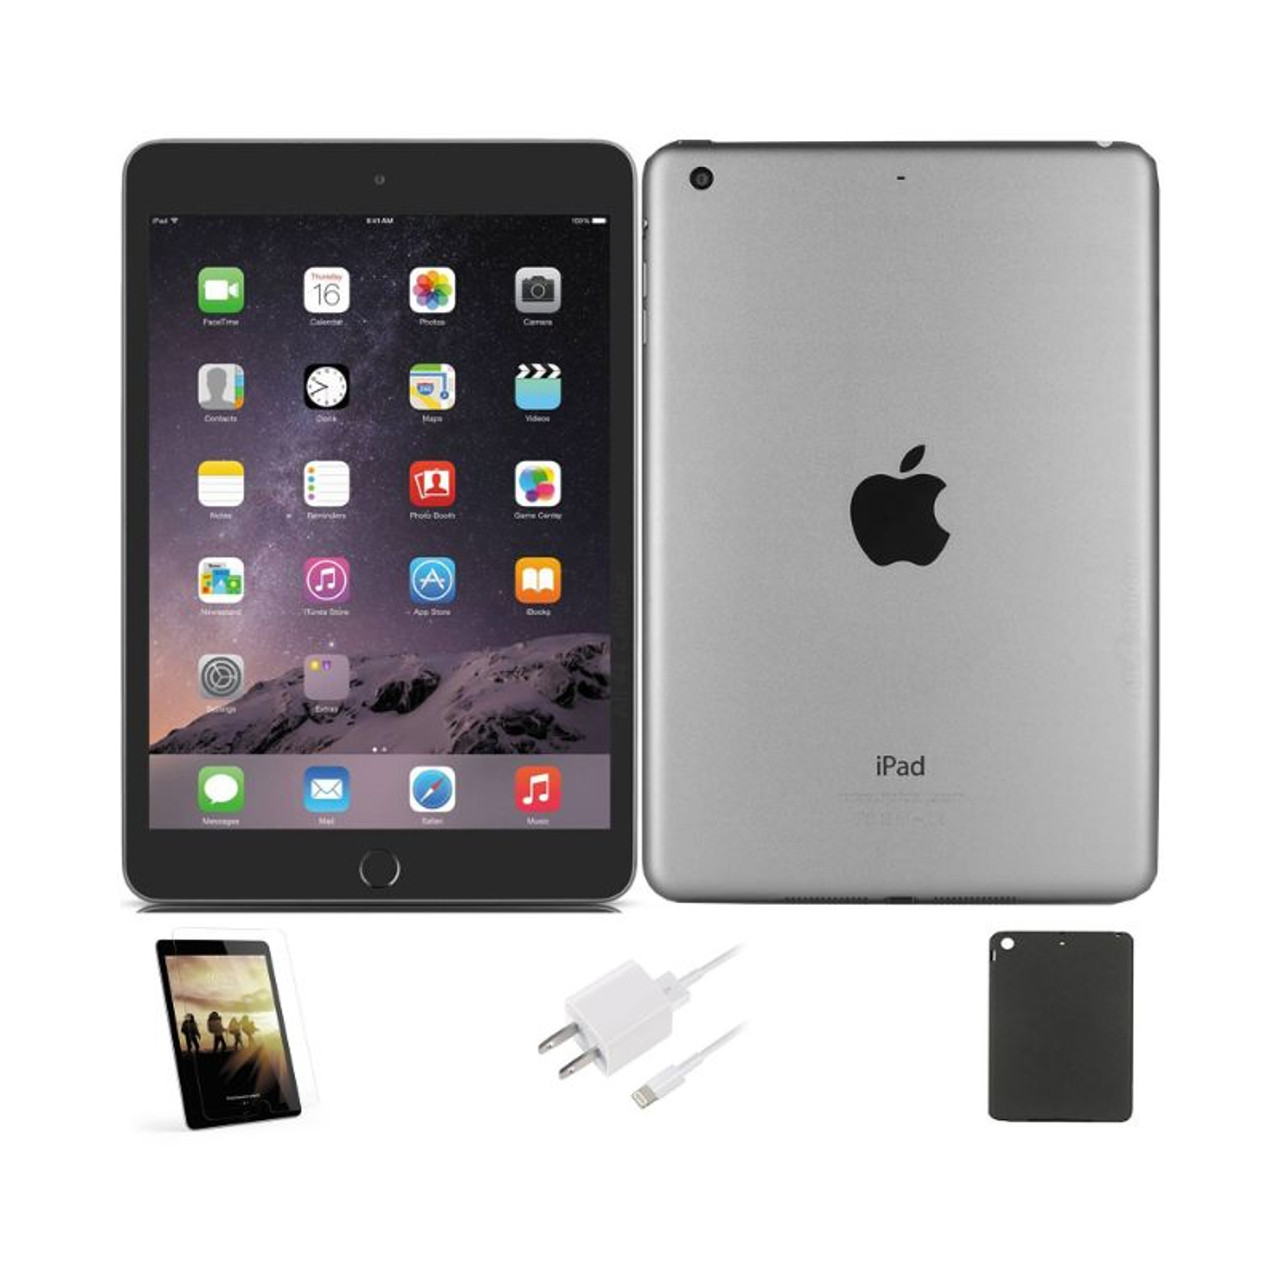 Apple iPad Mini 3 64GB, Wi-Fi Plus Cellular, Unlocked, Includes - Case, Screen Protector, Charger